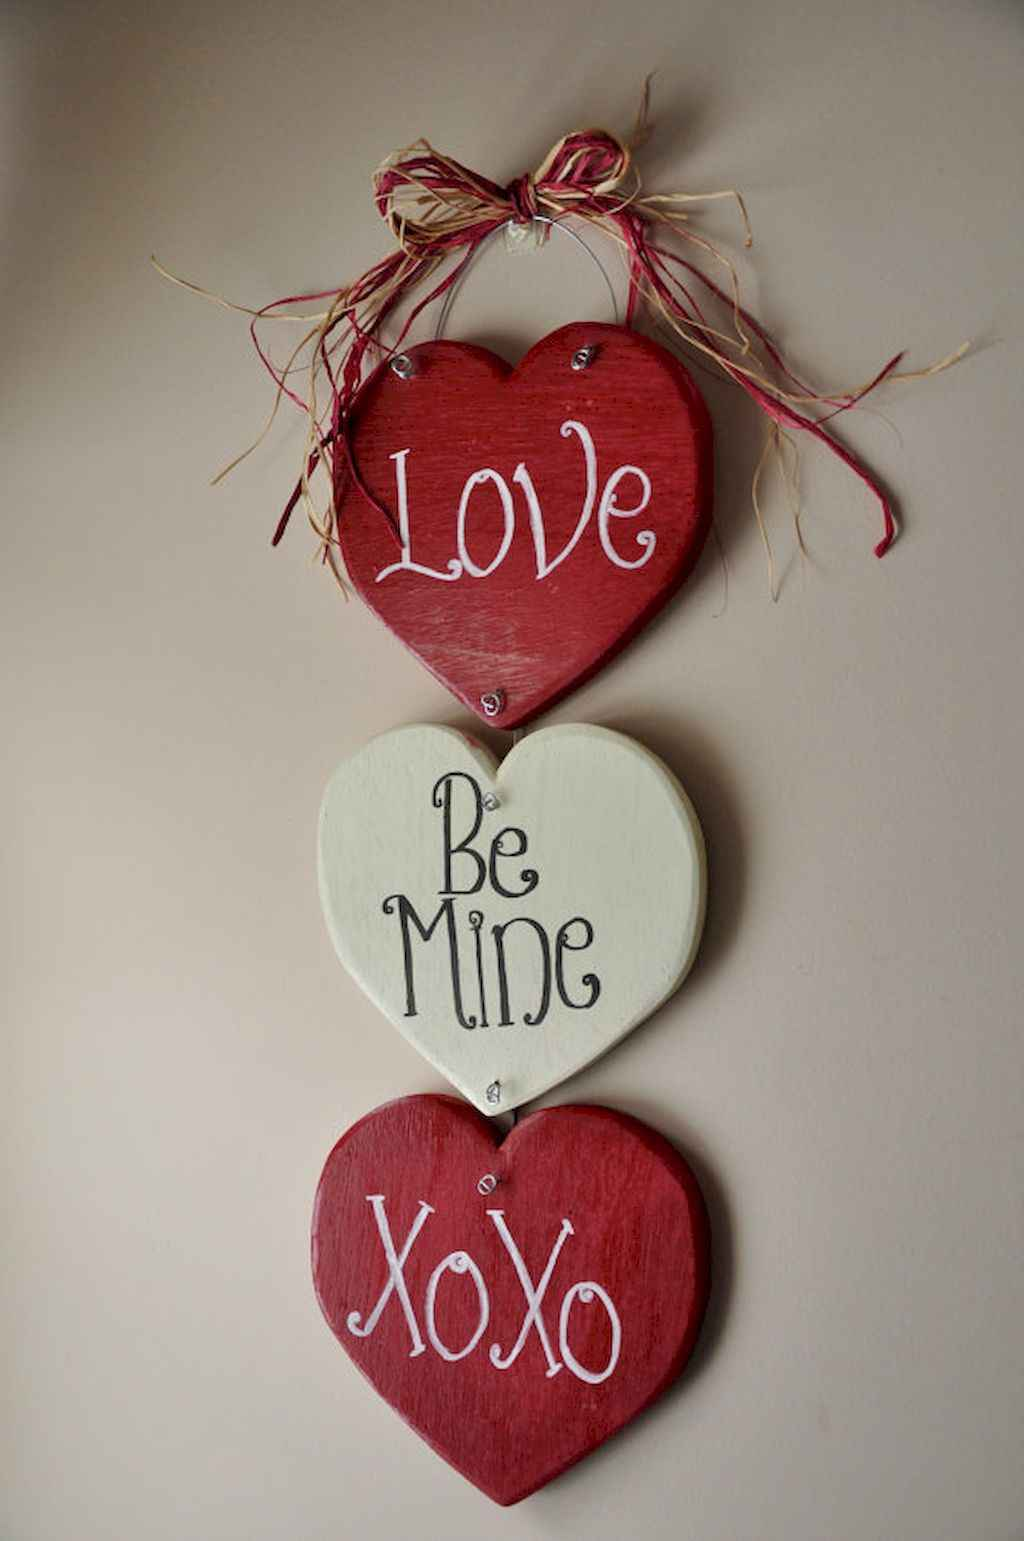 60 Romantic Valentines Crafts Ideas On A Budget (51)